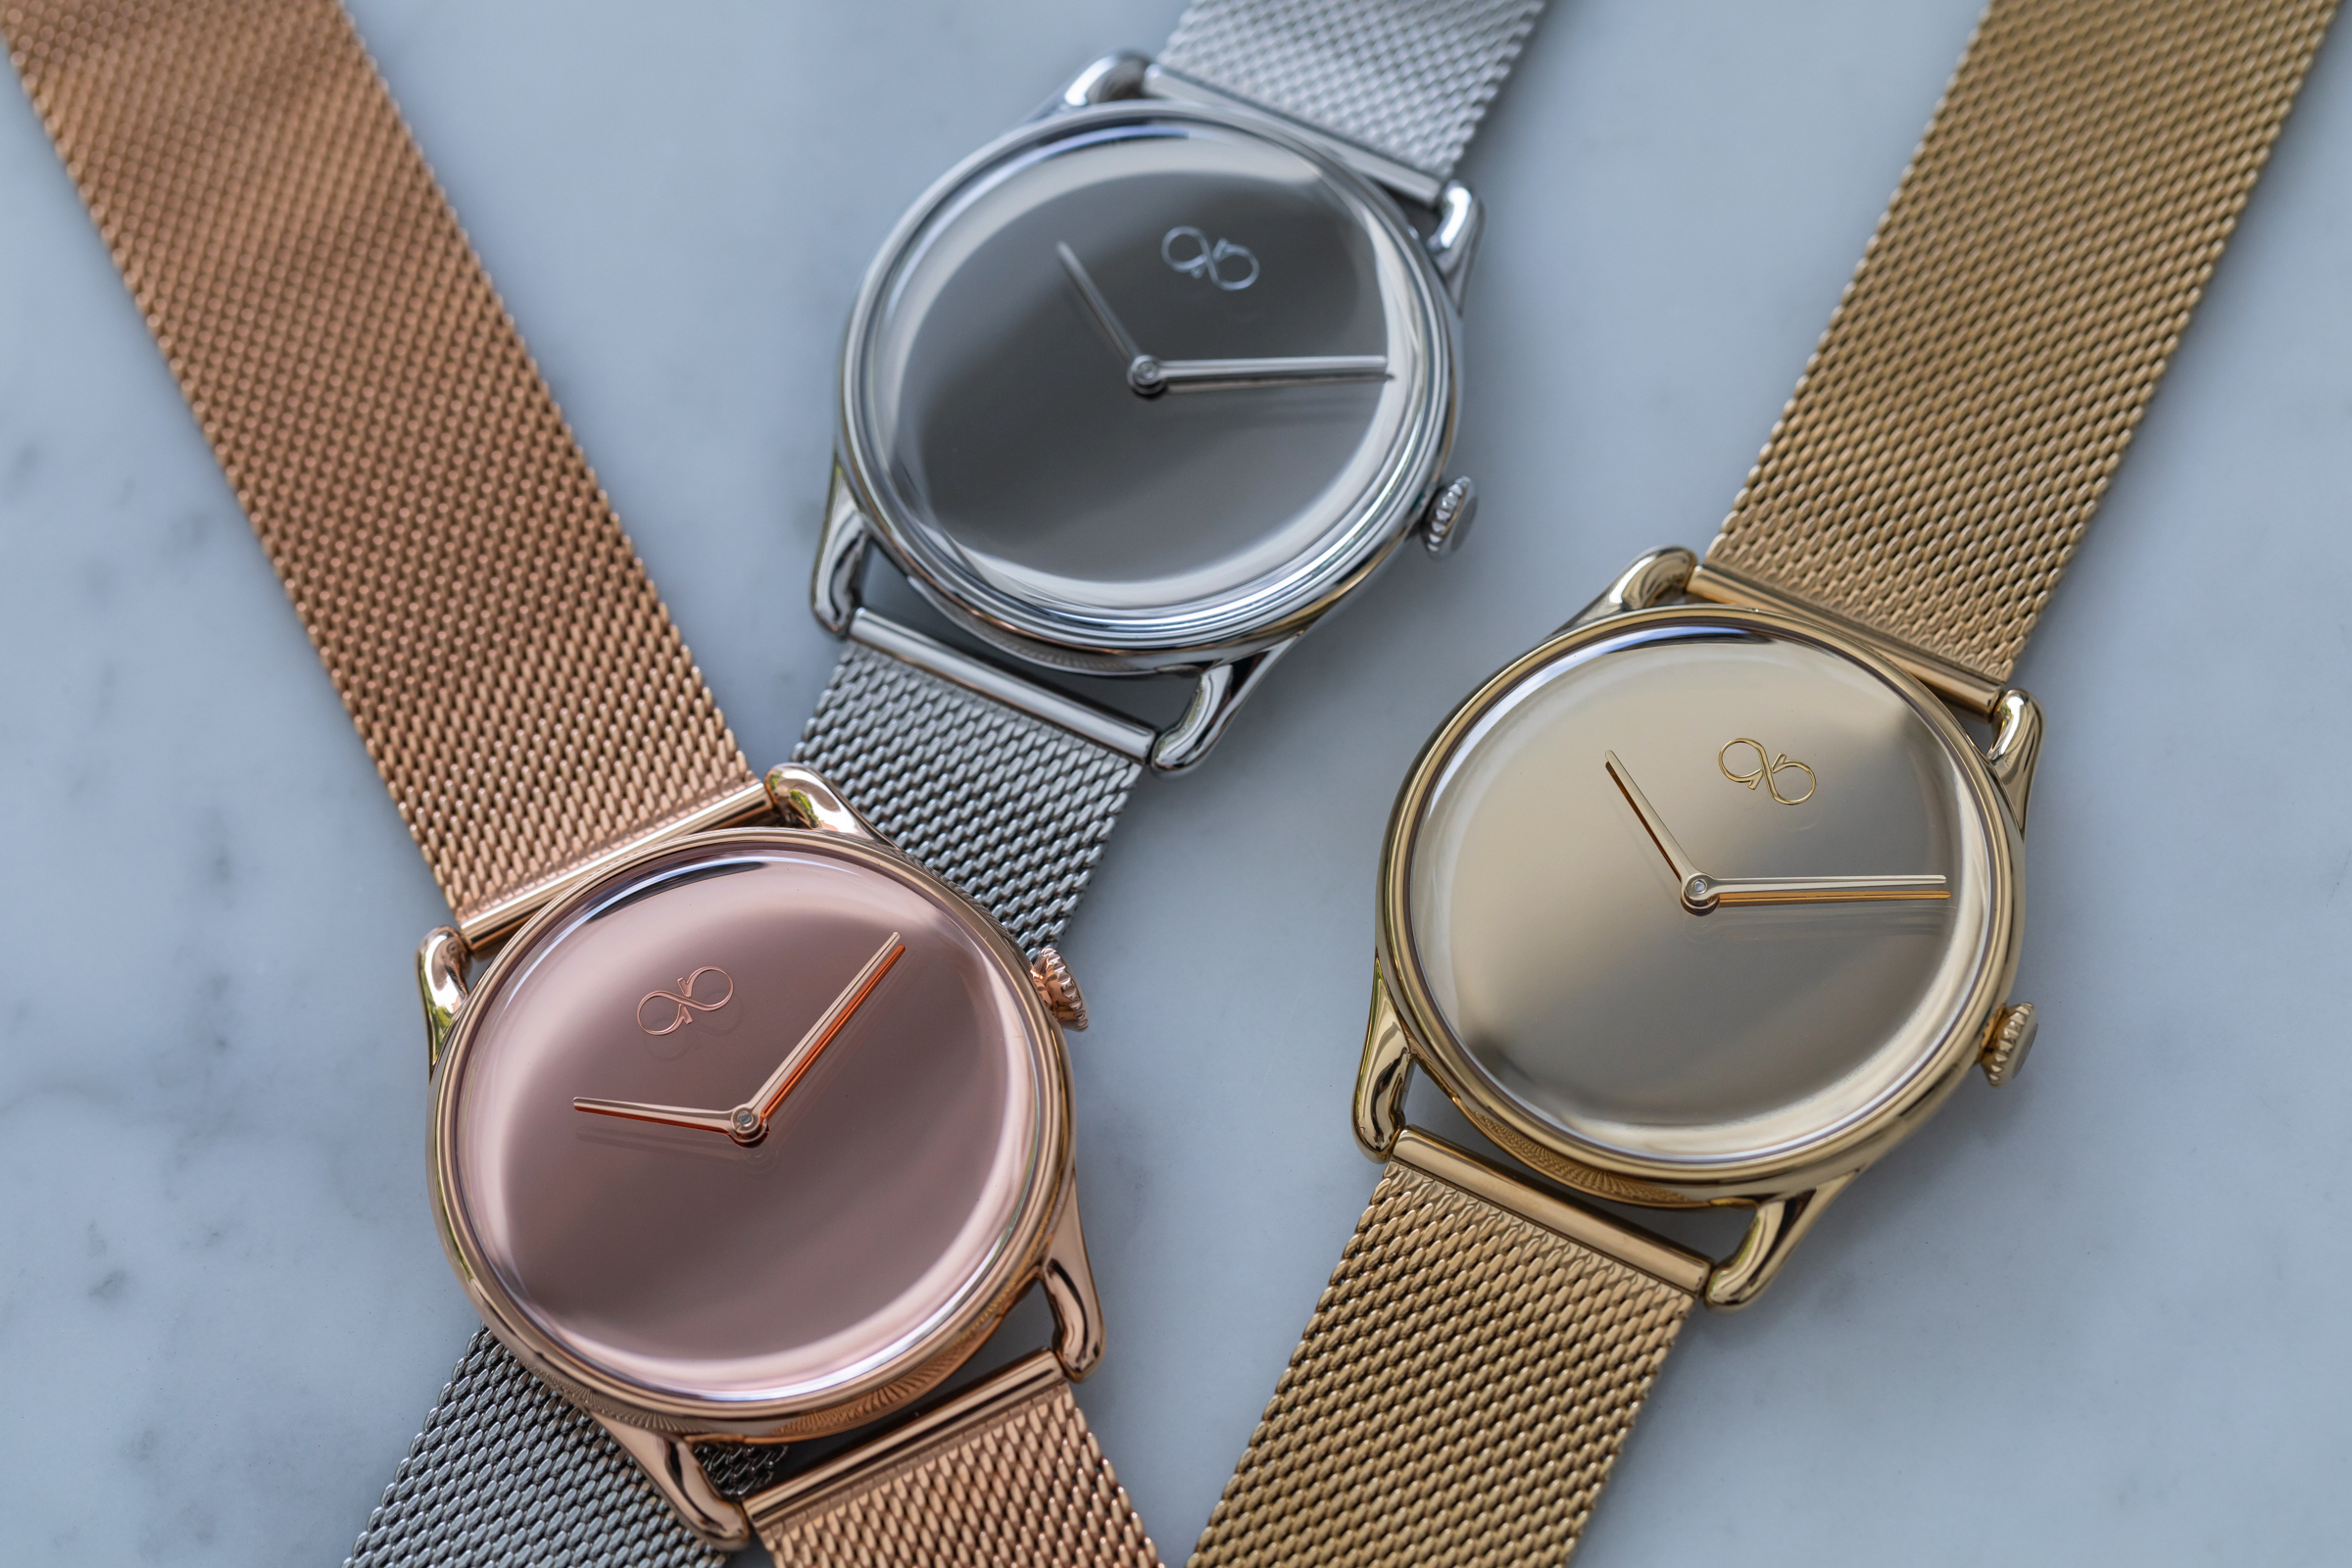 august berg danish ethical watch brand opens online store in japan sustainable design ethical